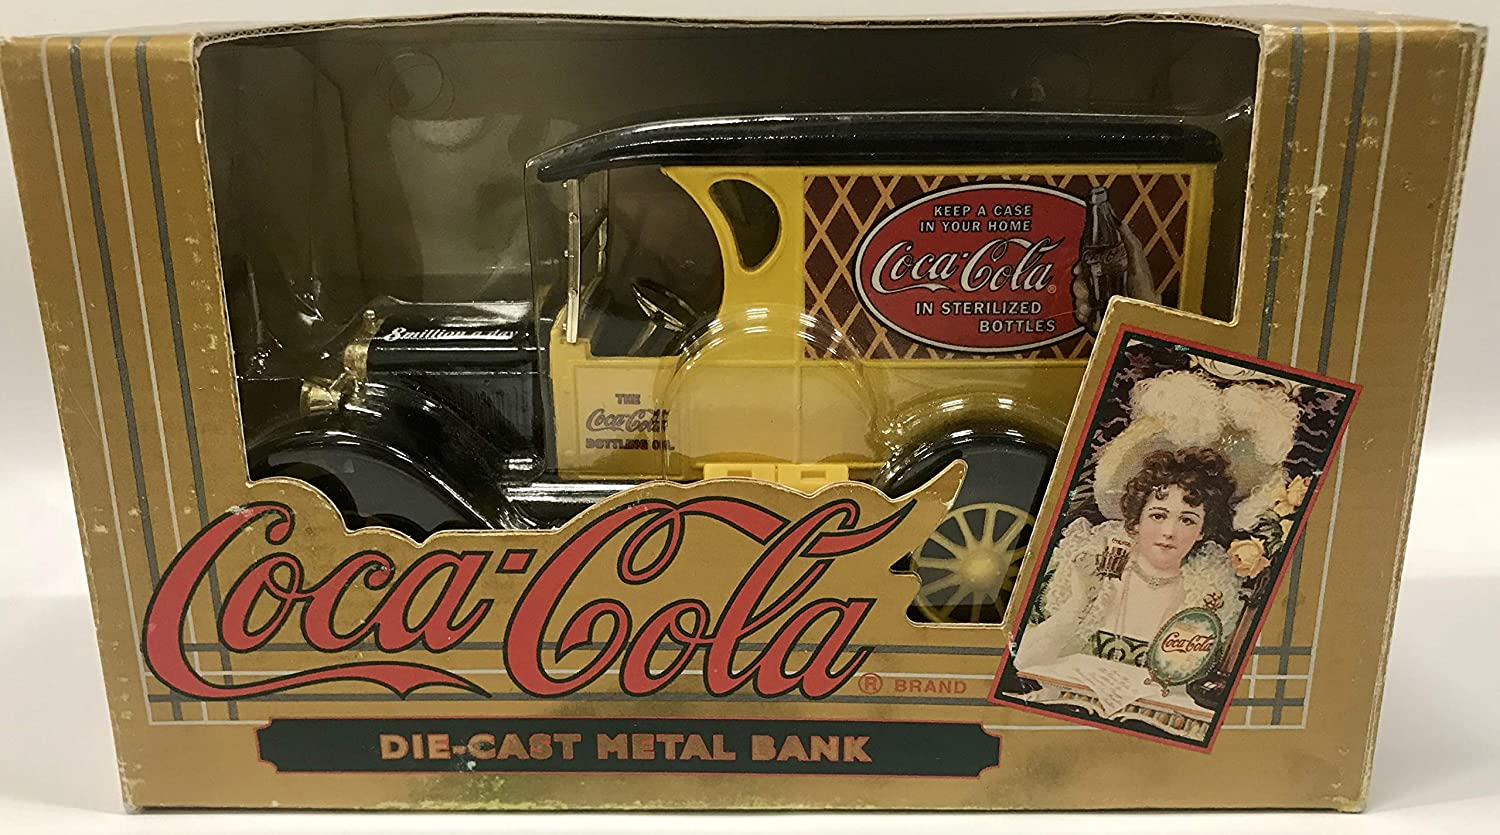 Coca-Cola Vintage rot Bottle Truck Coin Bank by Coca-Cola